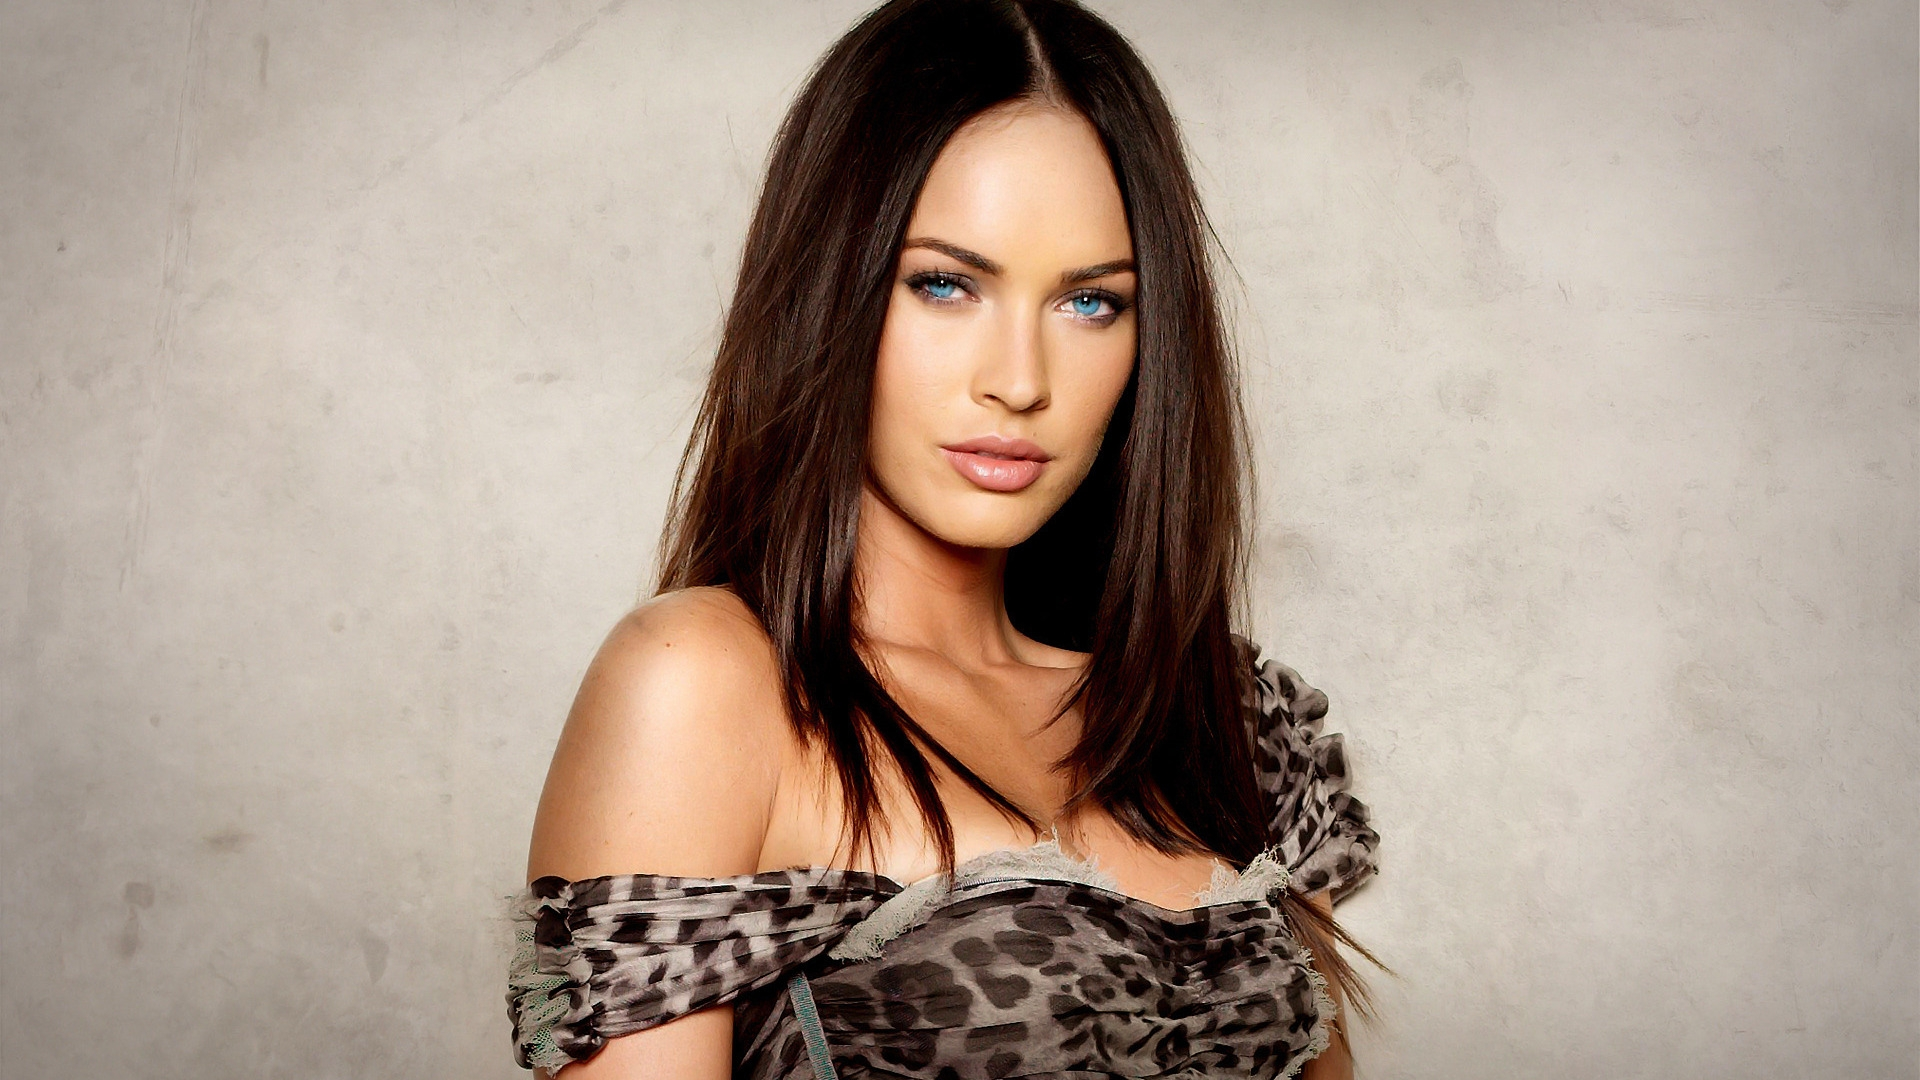 Fondo de Pantalla Megan Fox busto HD   Wallpapers HQ 1080p 1920x1080